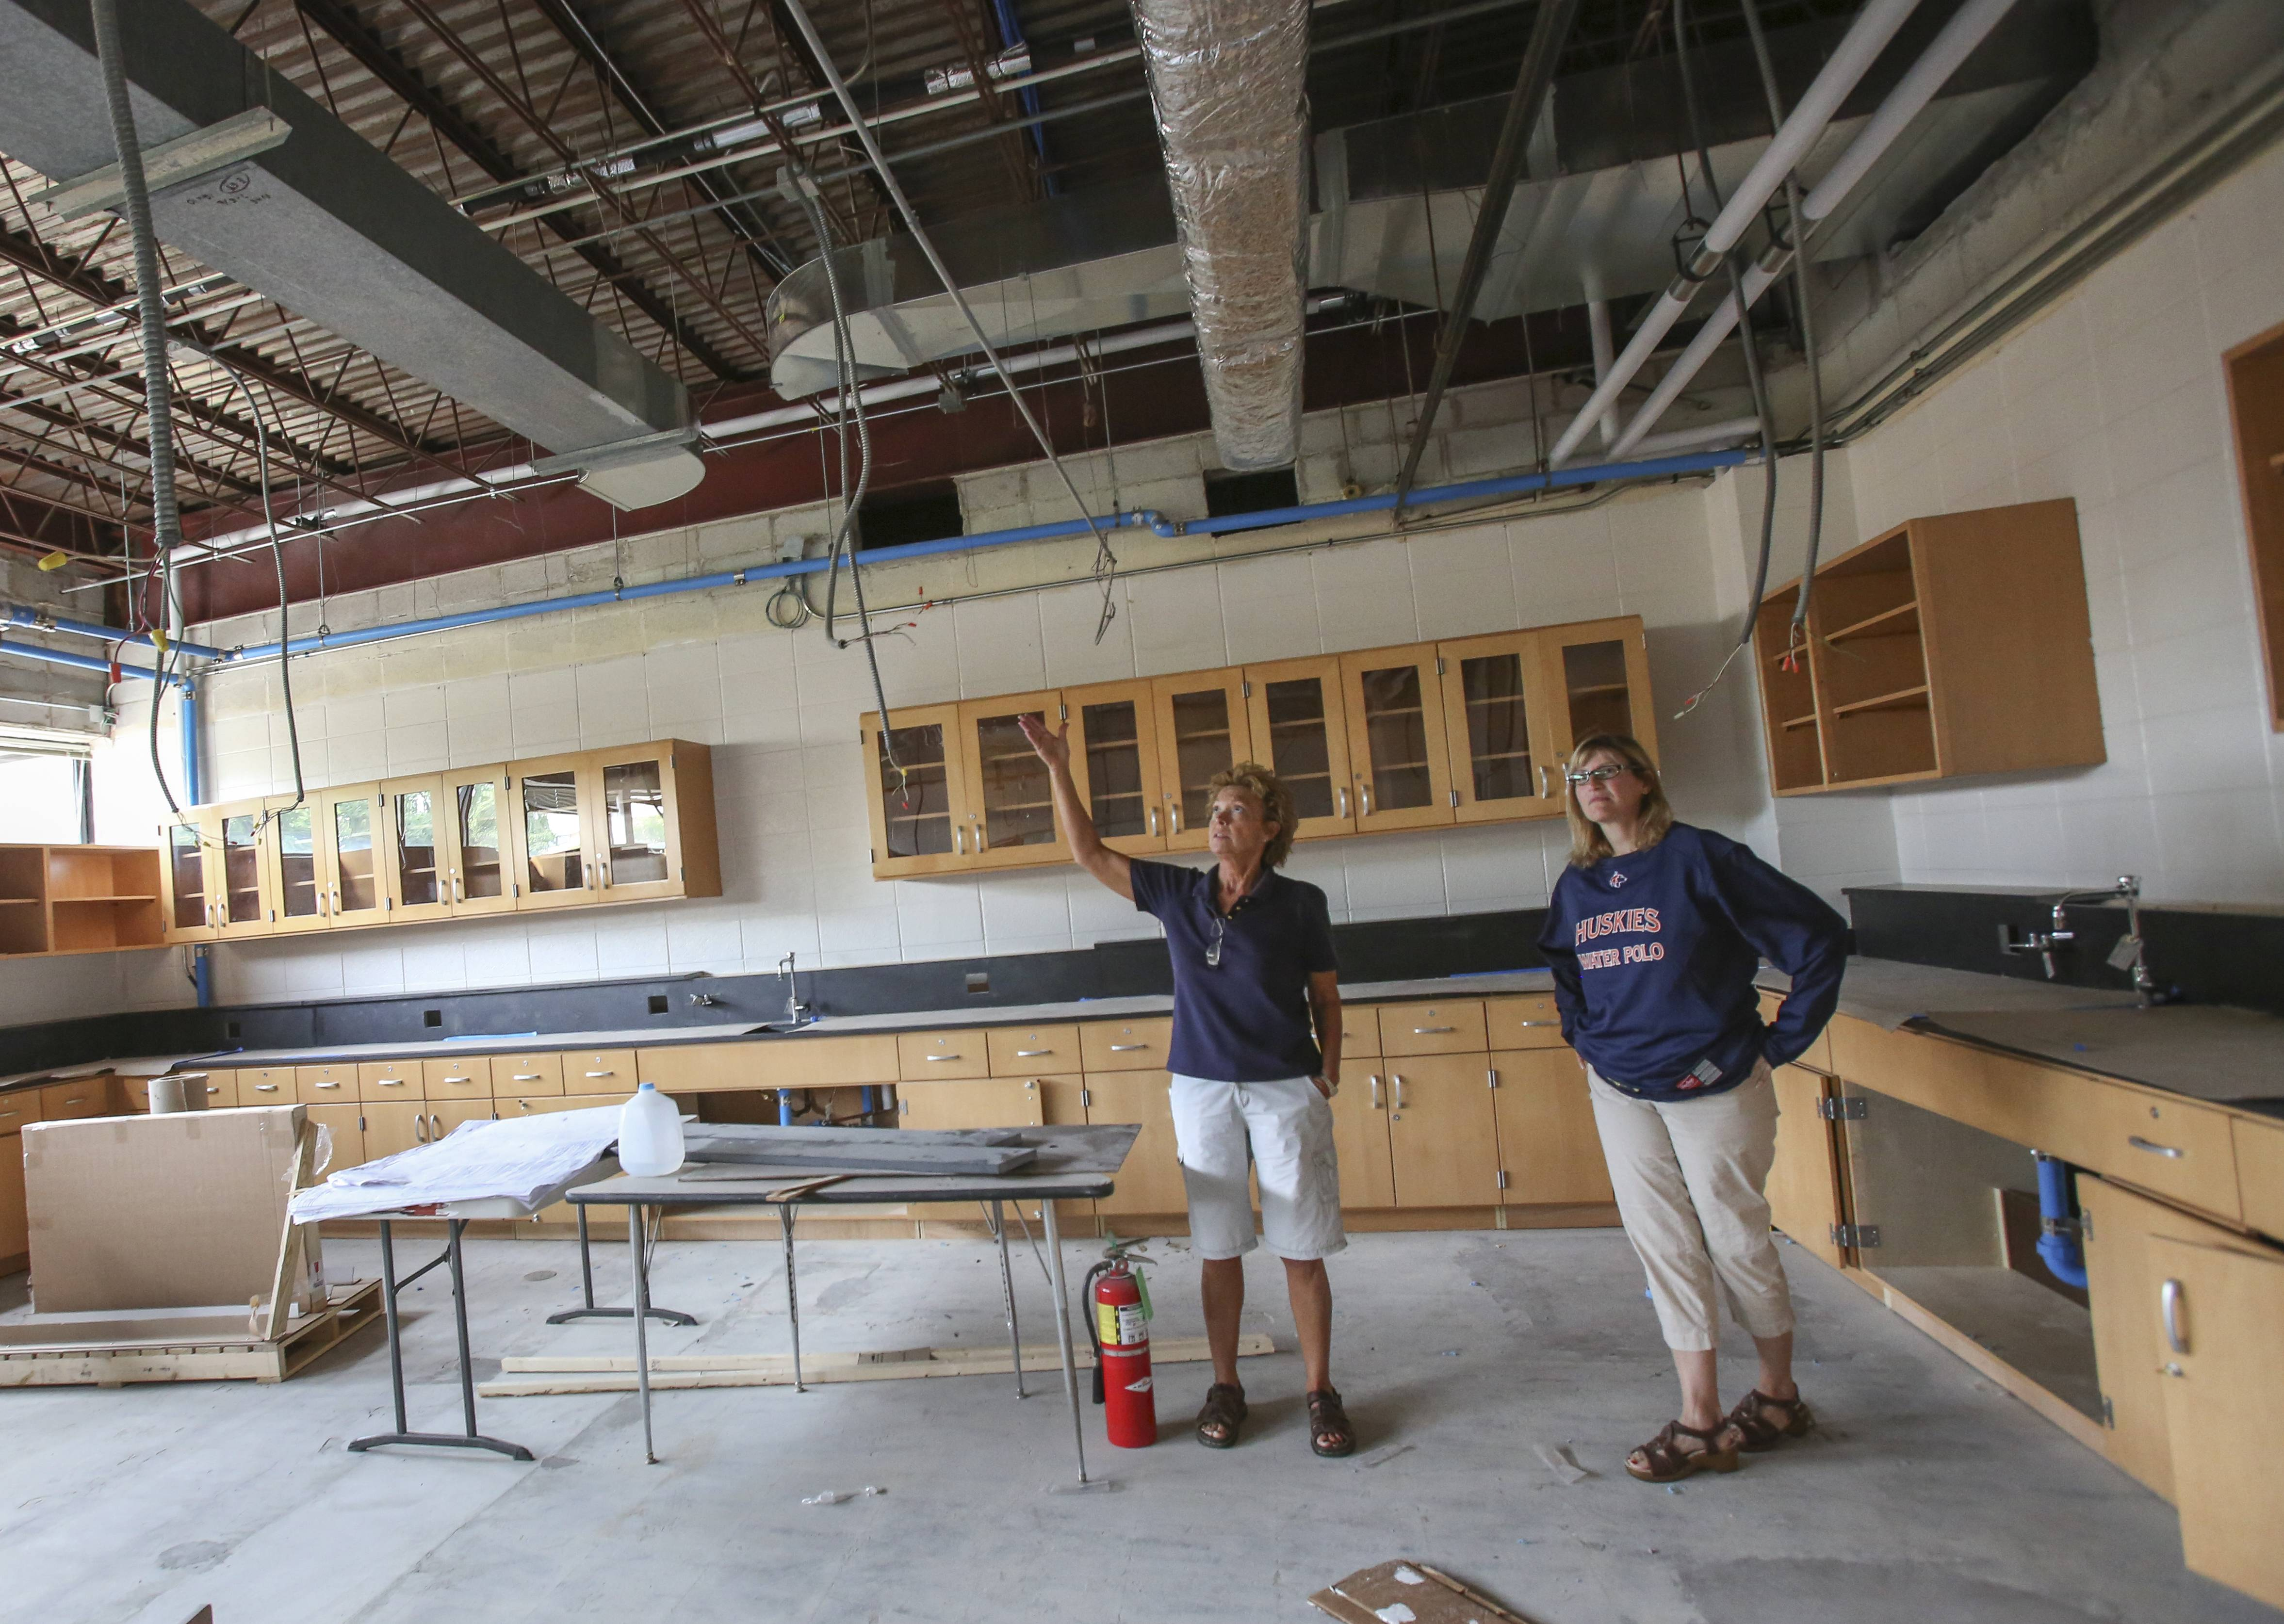 Lisa Corrigan, facility manager, and Michele Chapman, assistant principal for curriculum and instruction, take a look at a new science classroom taking shape at Naperville North High School.